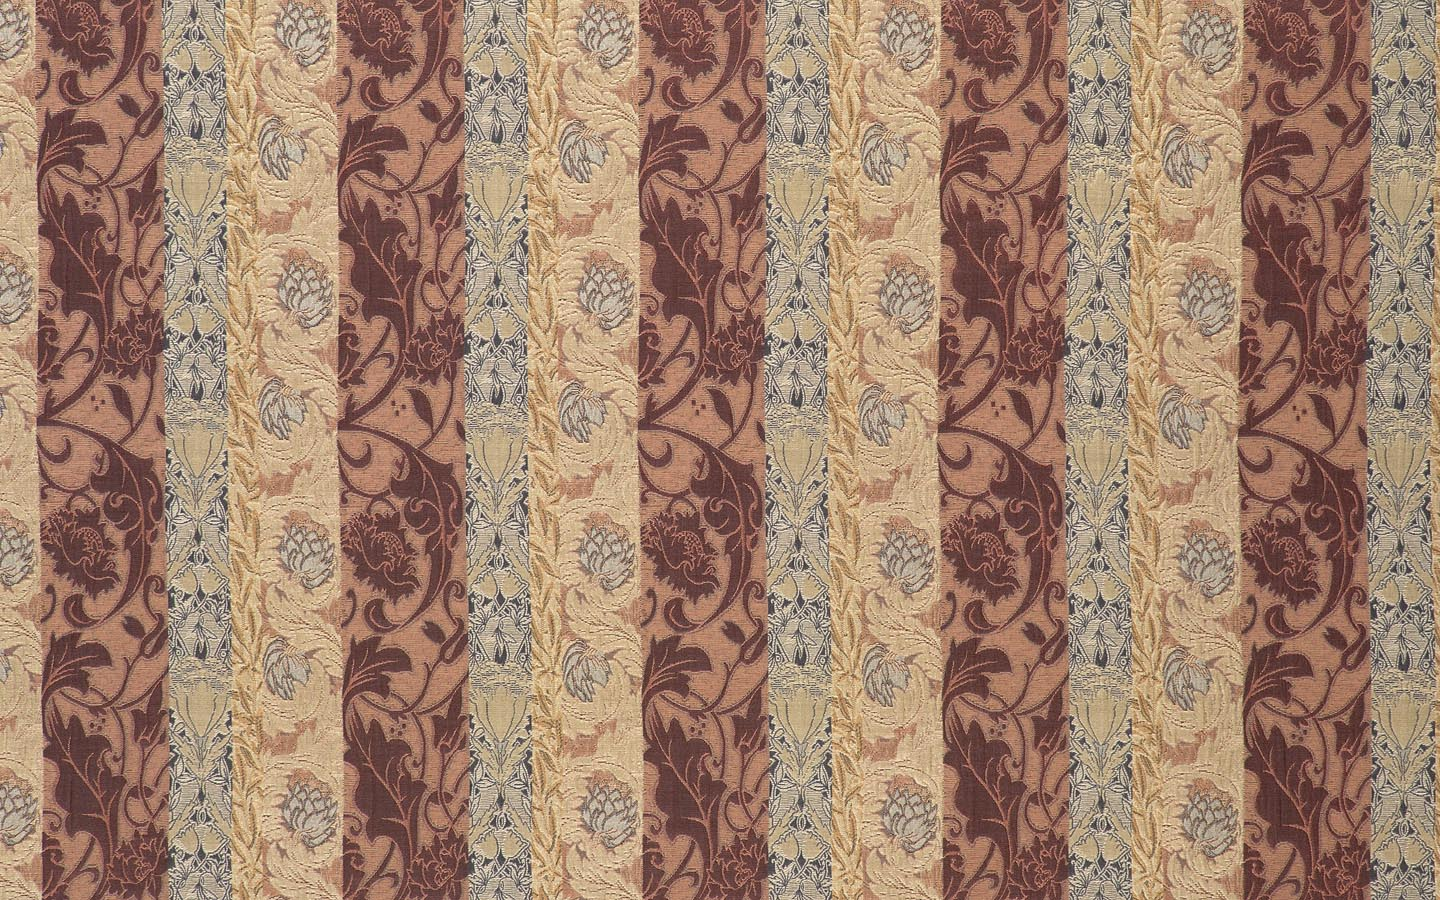 Fabric texture 13732